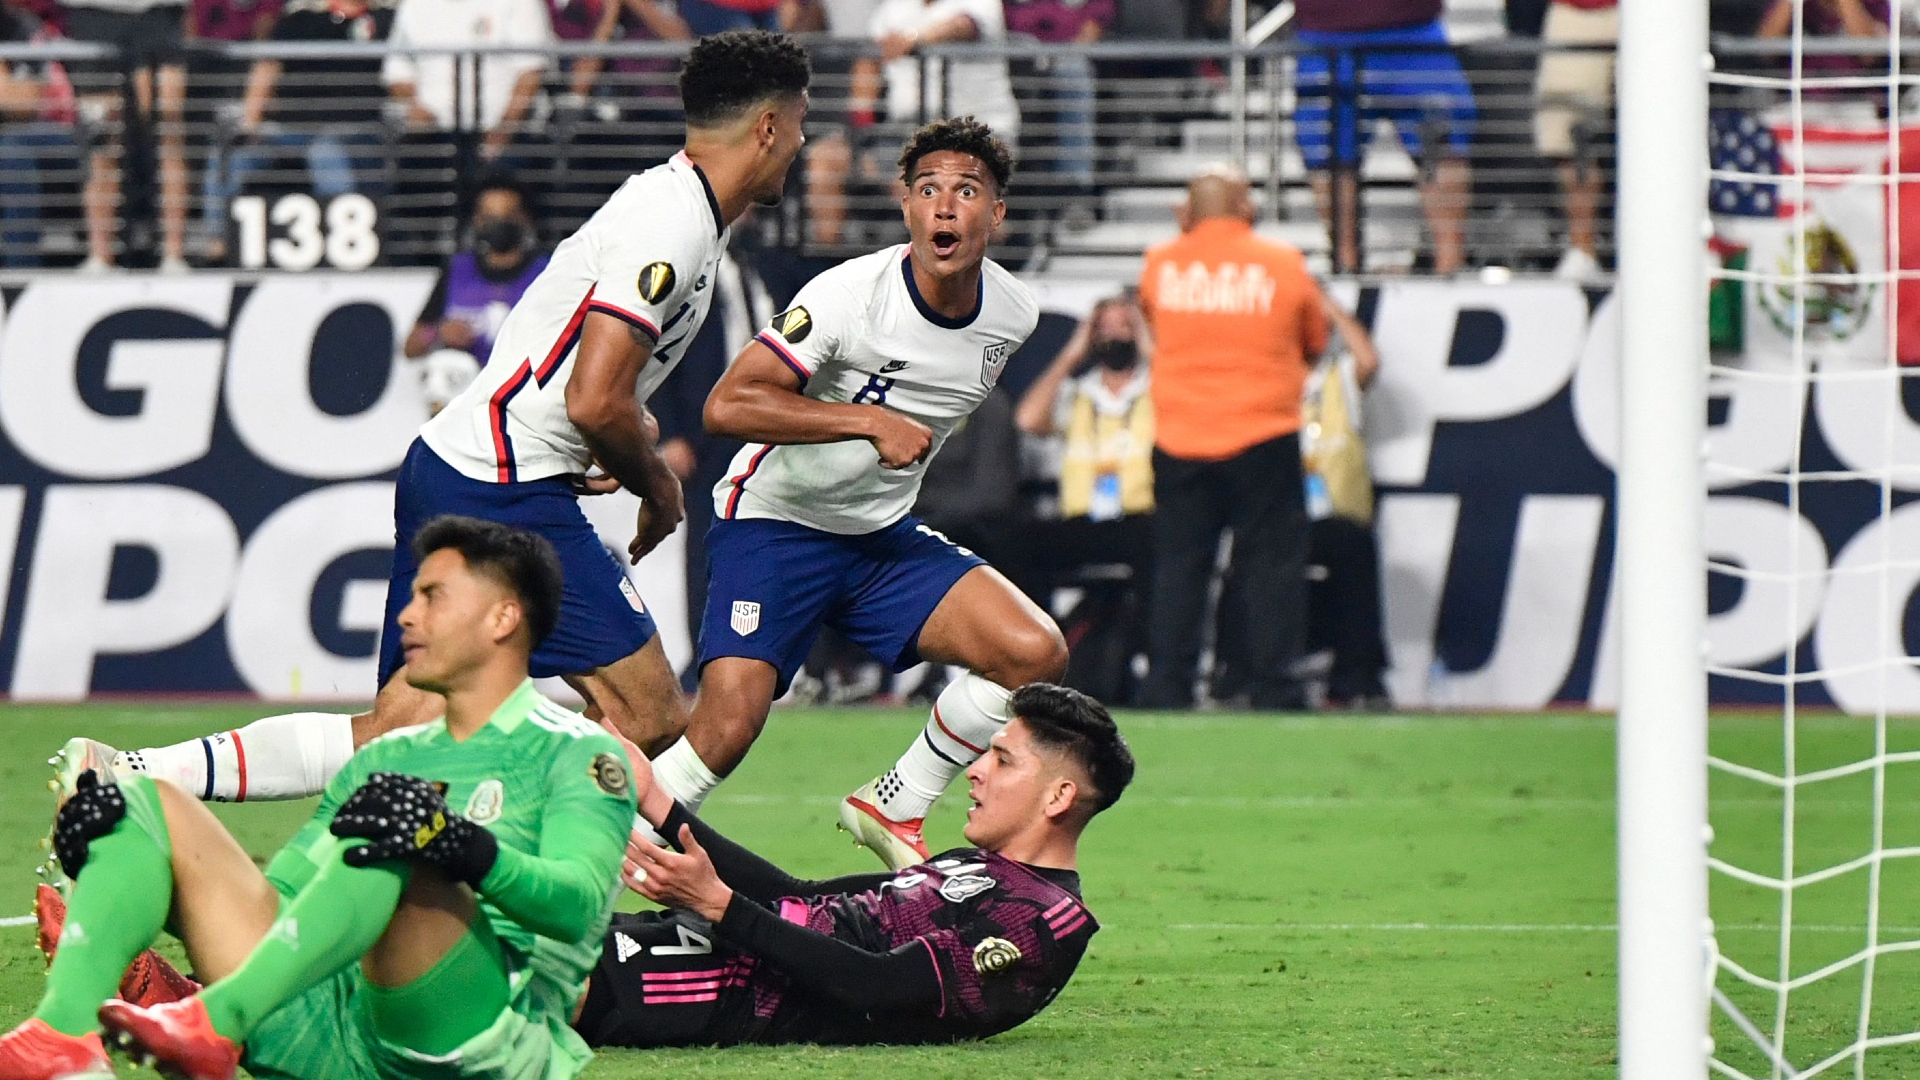 'Dos a Cero!' - USMNT shocks Mexico in extra time once again to seal second trophy of summer